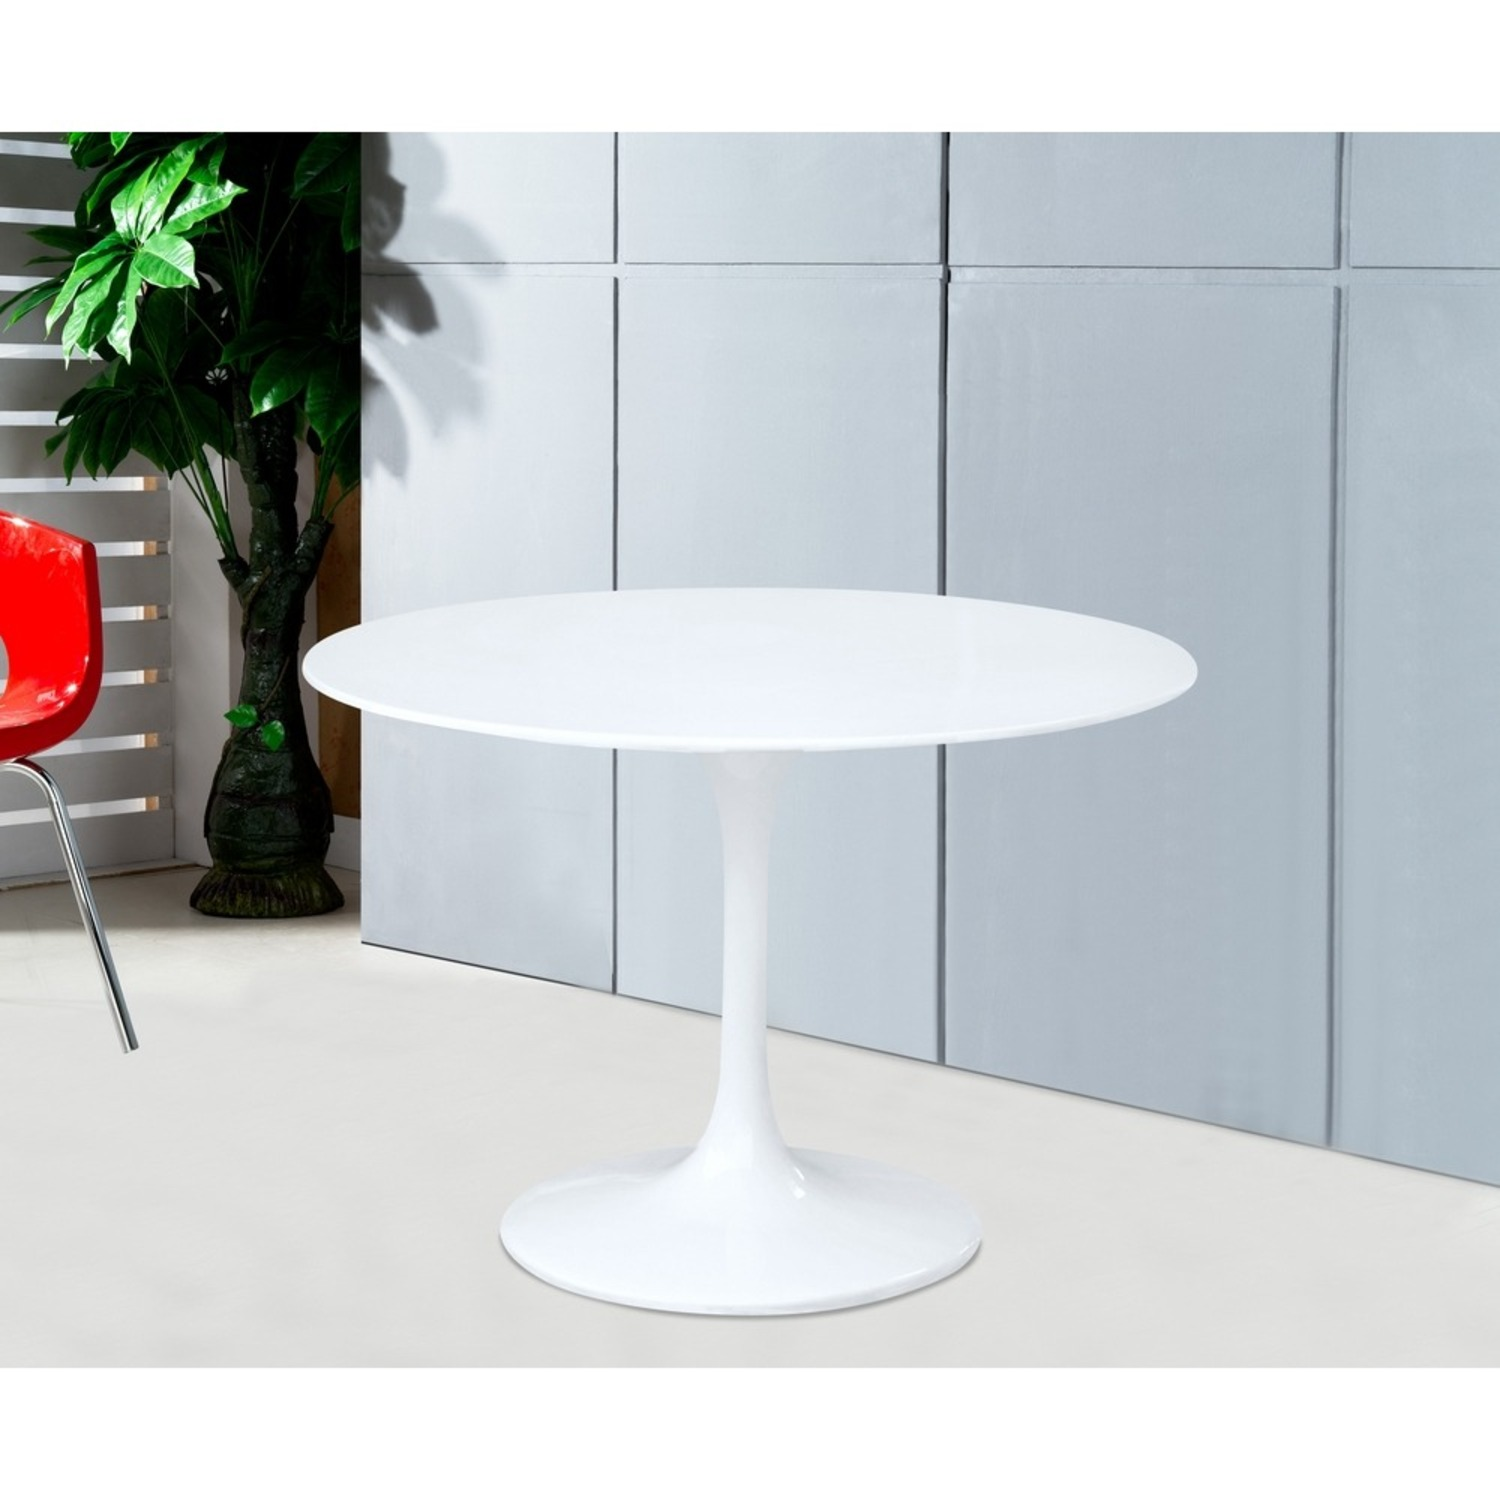 Tulip Style Dining Table In White Fiberglass - image-4